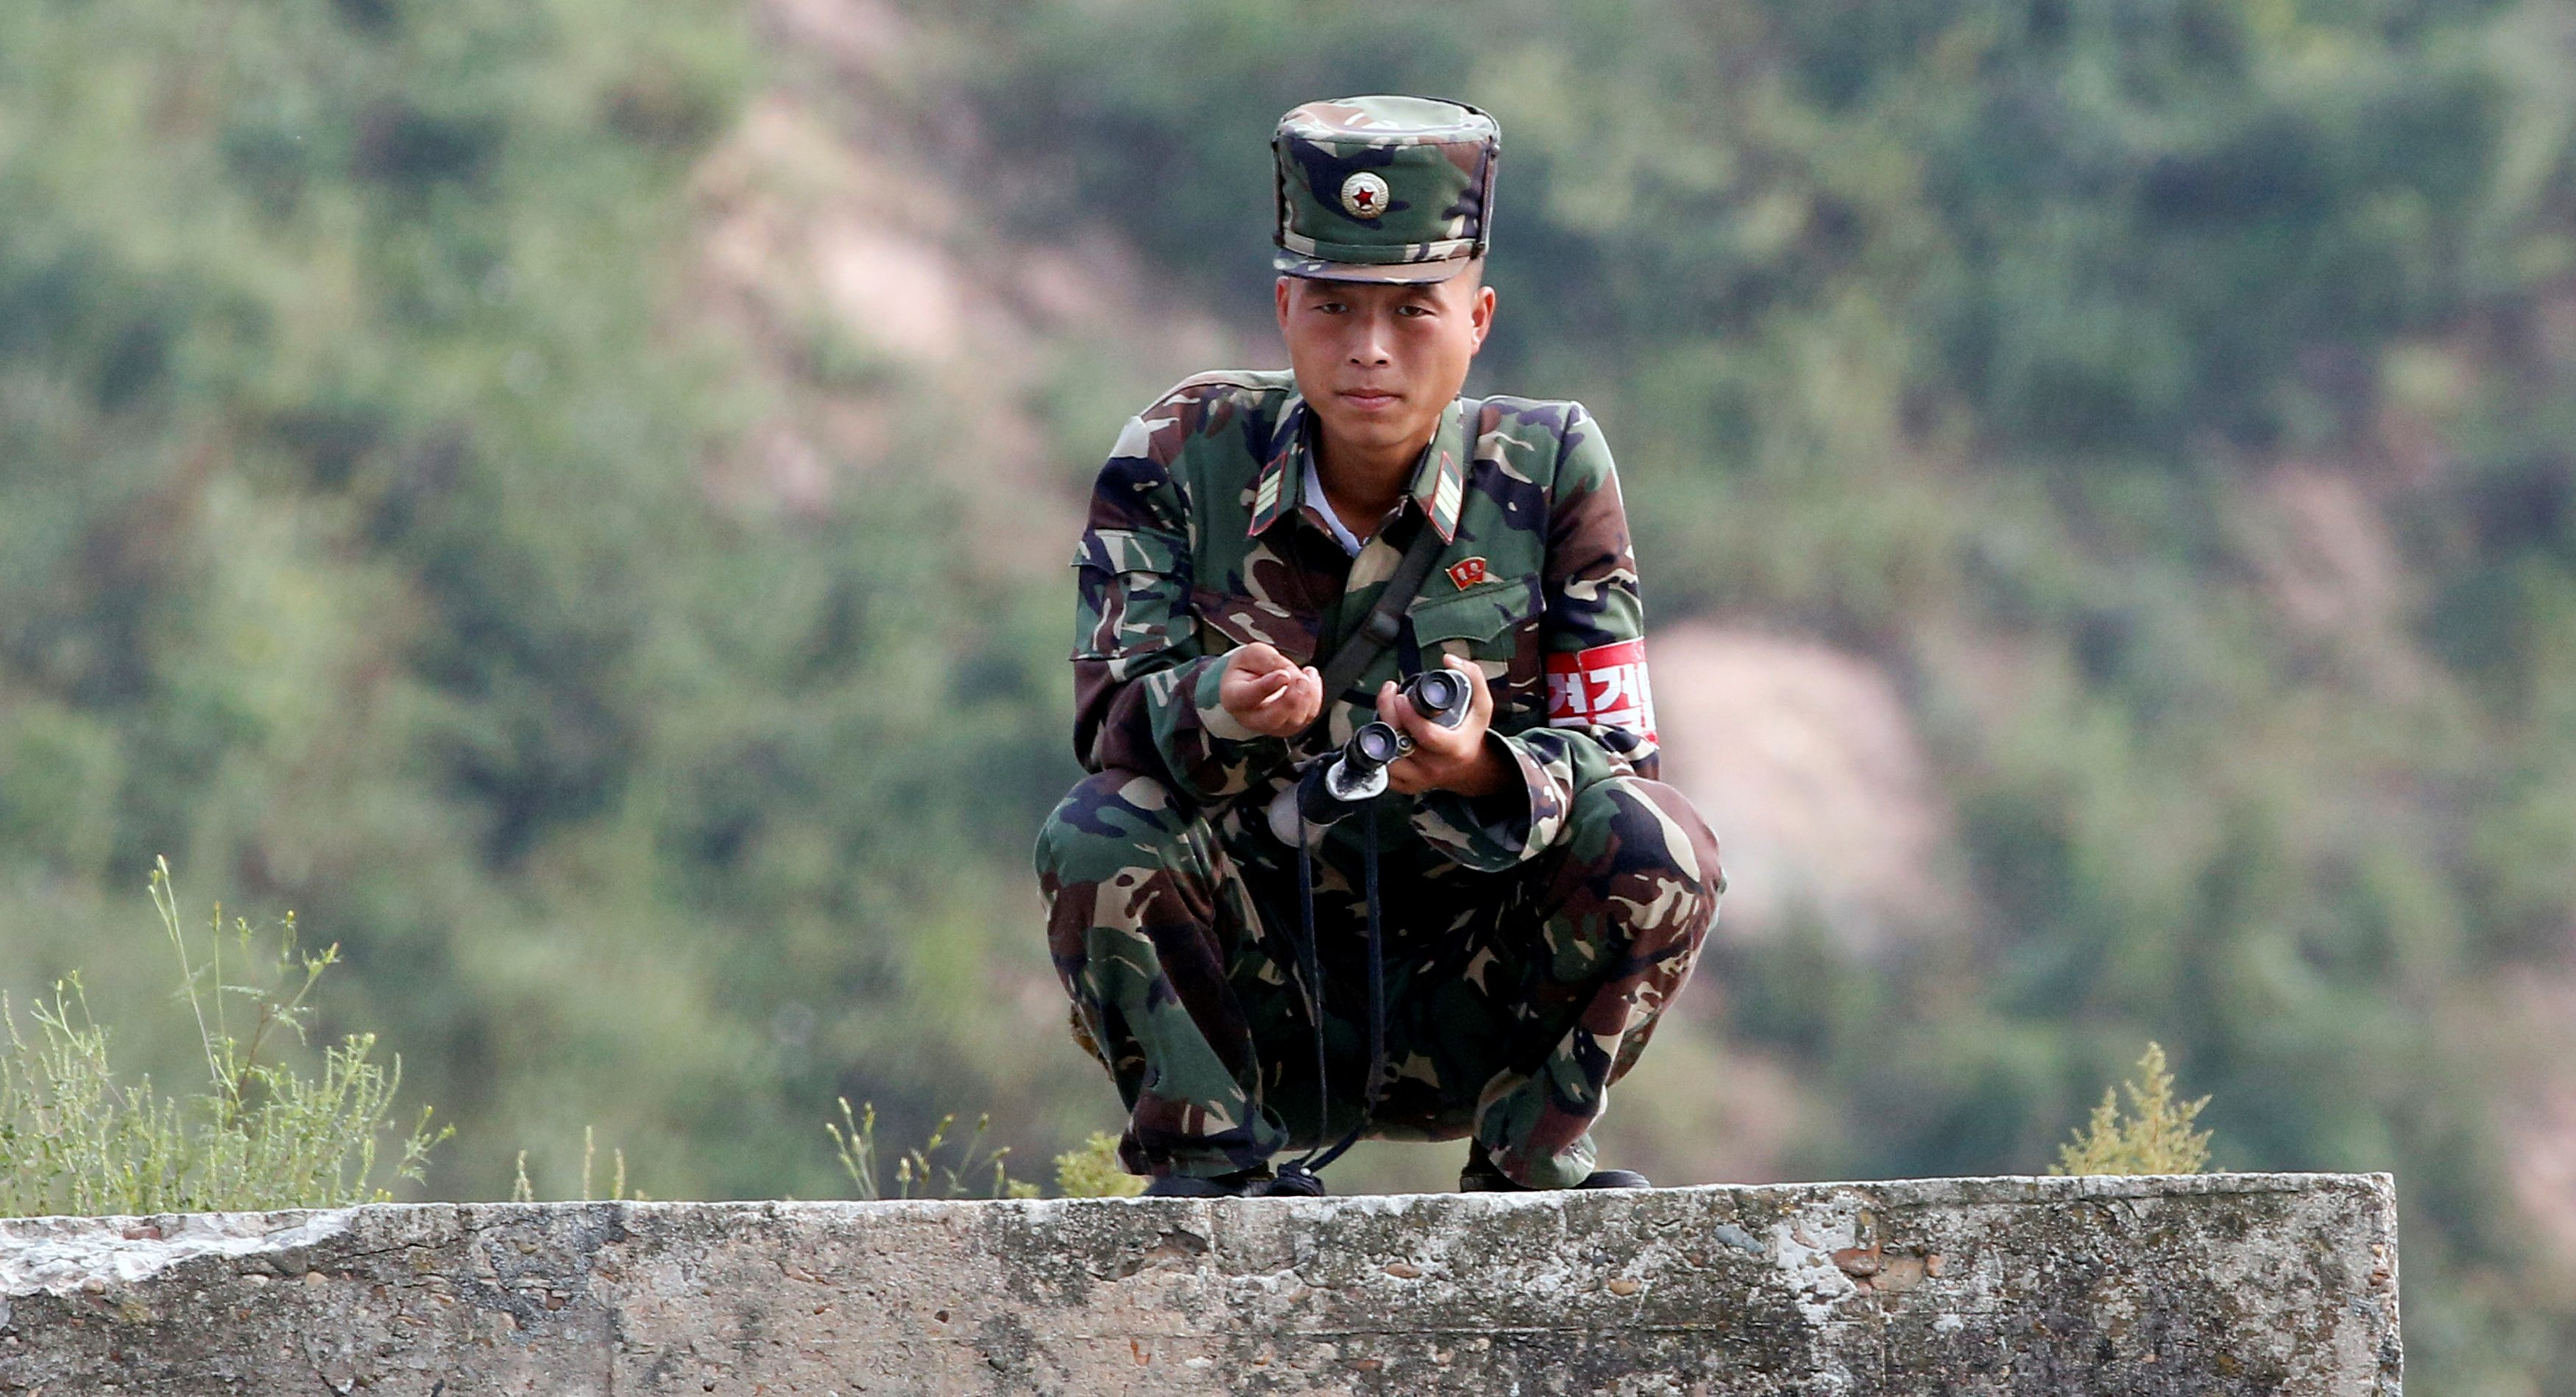 A North Korean soldier squats along the Yalu River in Sinuiju, North Korea, which borders Dandong in China's Liaoning province